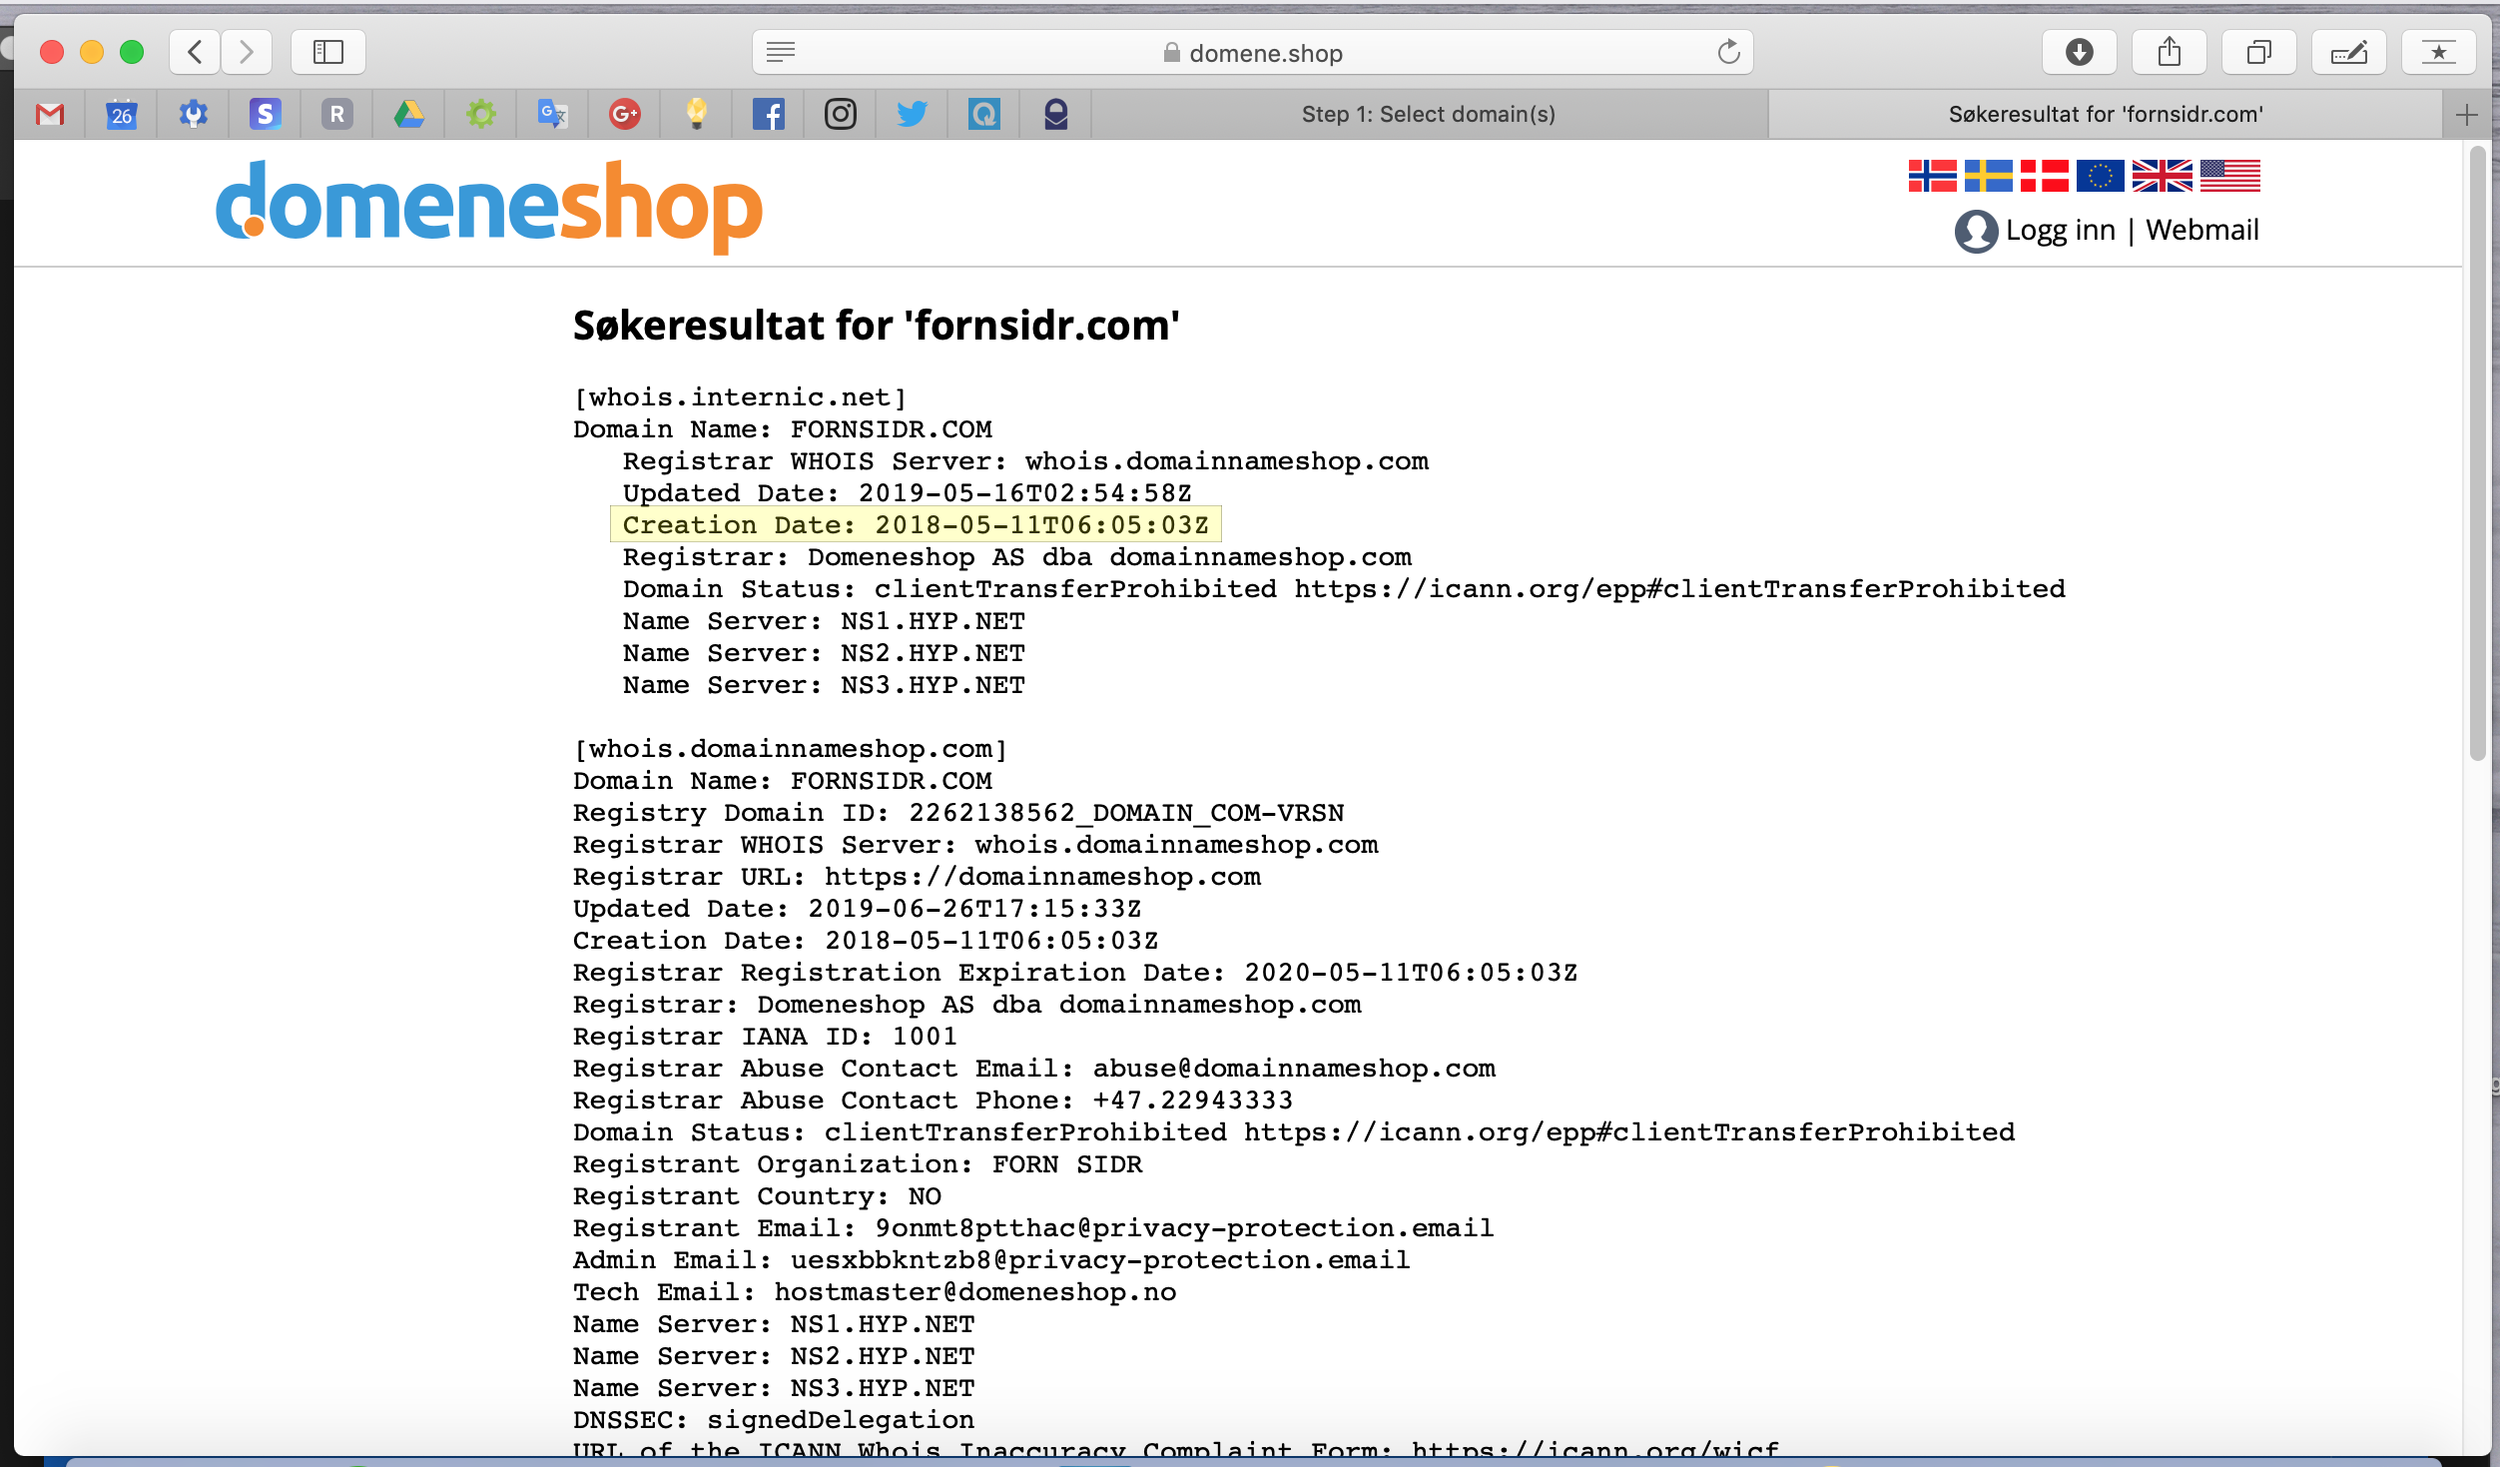 Fornsidr.com (US) domain registered on 11 May 2018.